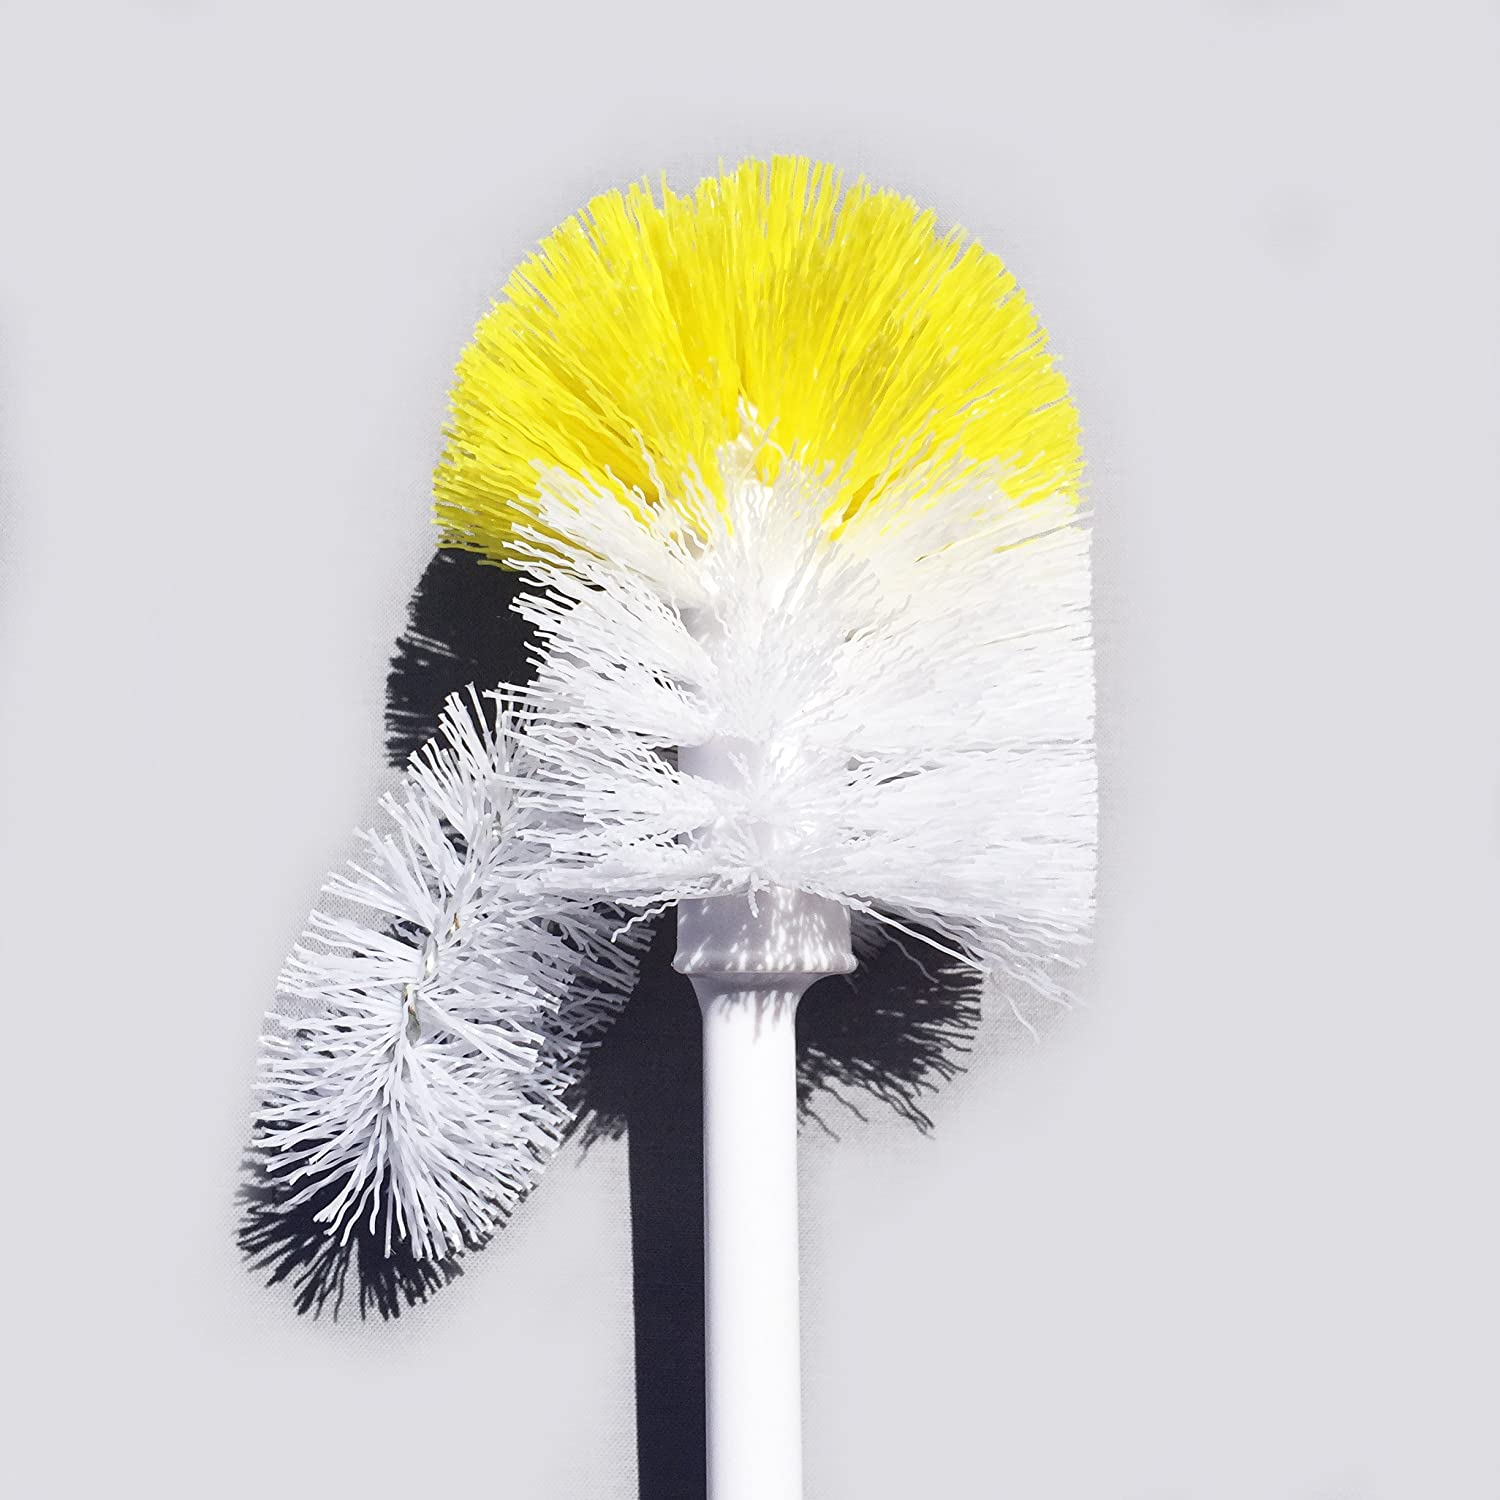 Amazon.com: Commercial Grade Toilet Brush - Adjustable Rim Scrub ...